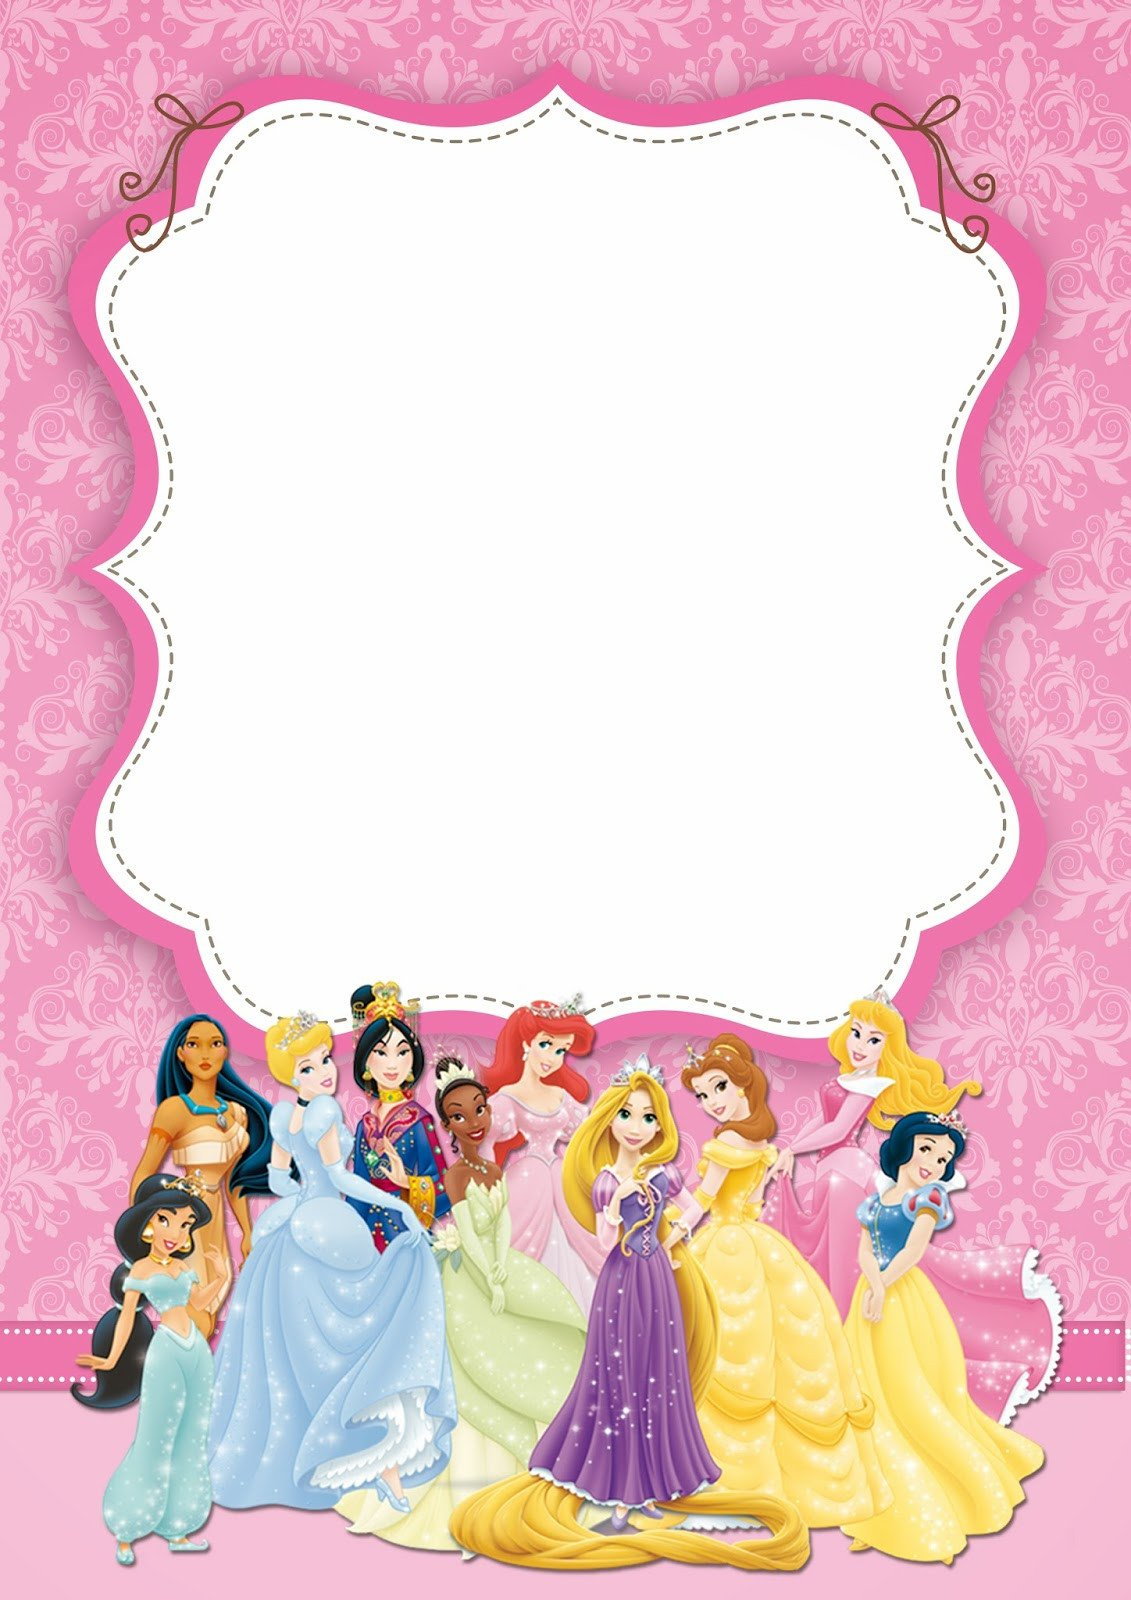 Disney Princess Invitation Template Free Printable Disney Princess Ticket Invitation Template